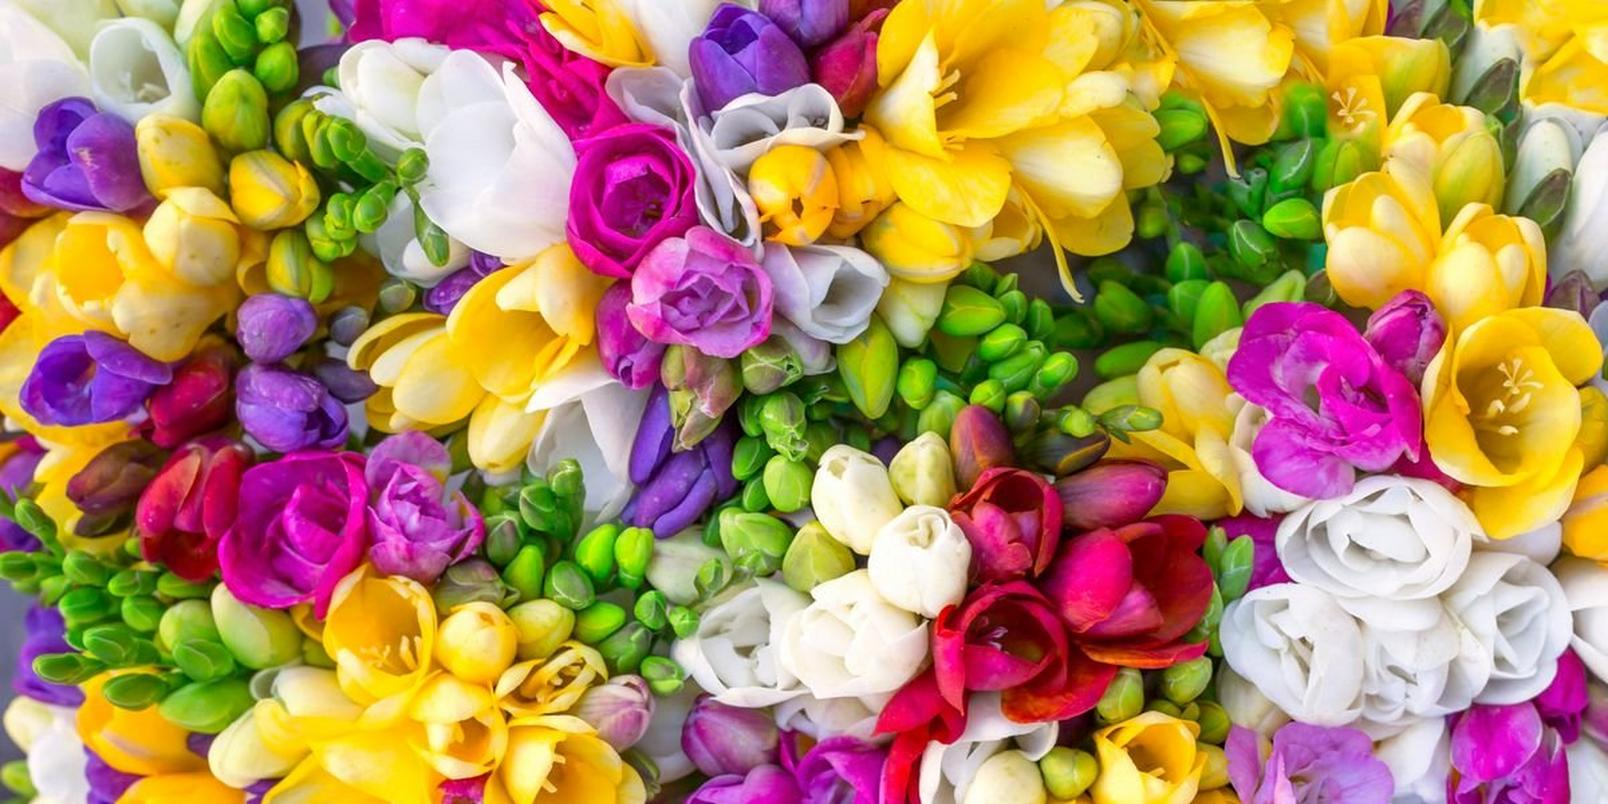 flowers-to-match-your-style-1